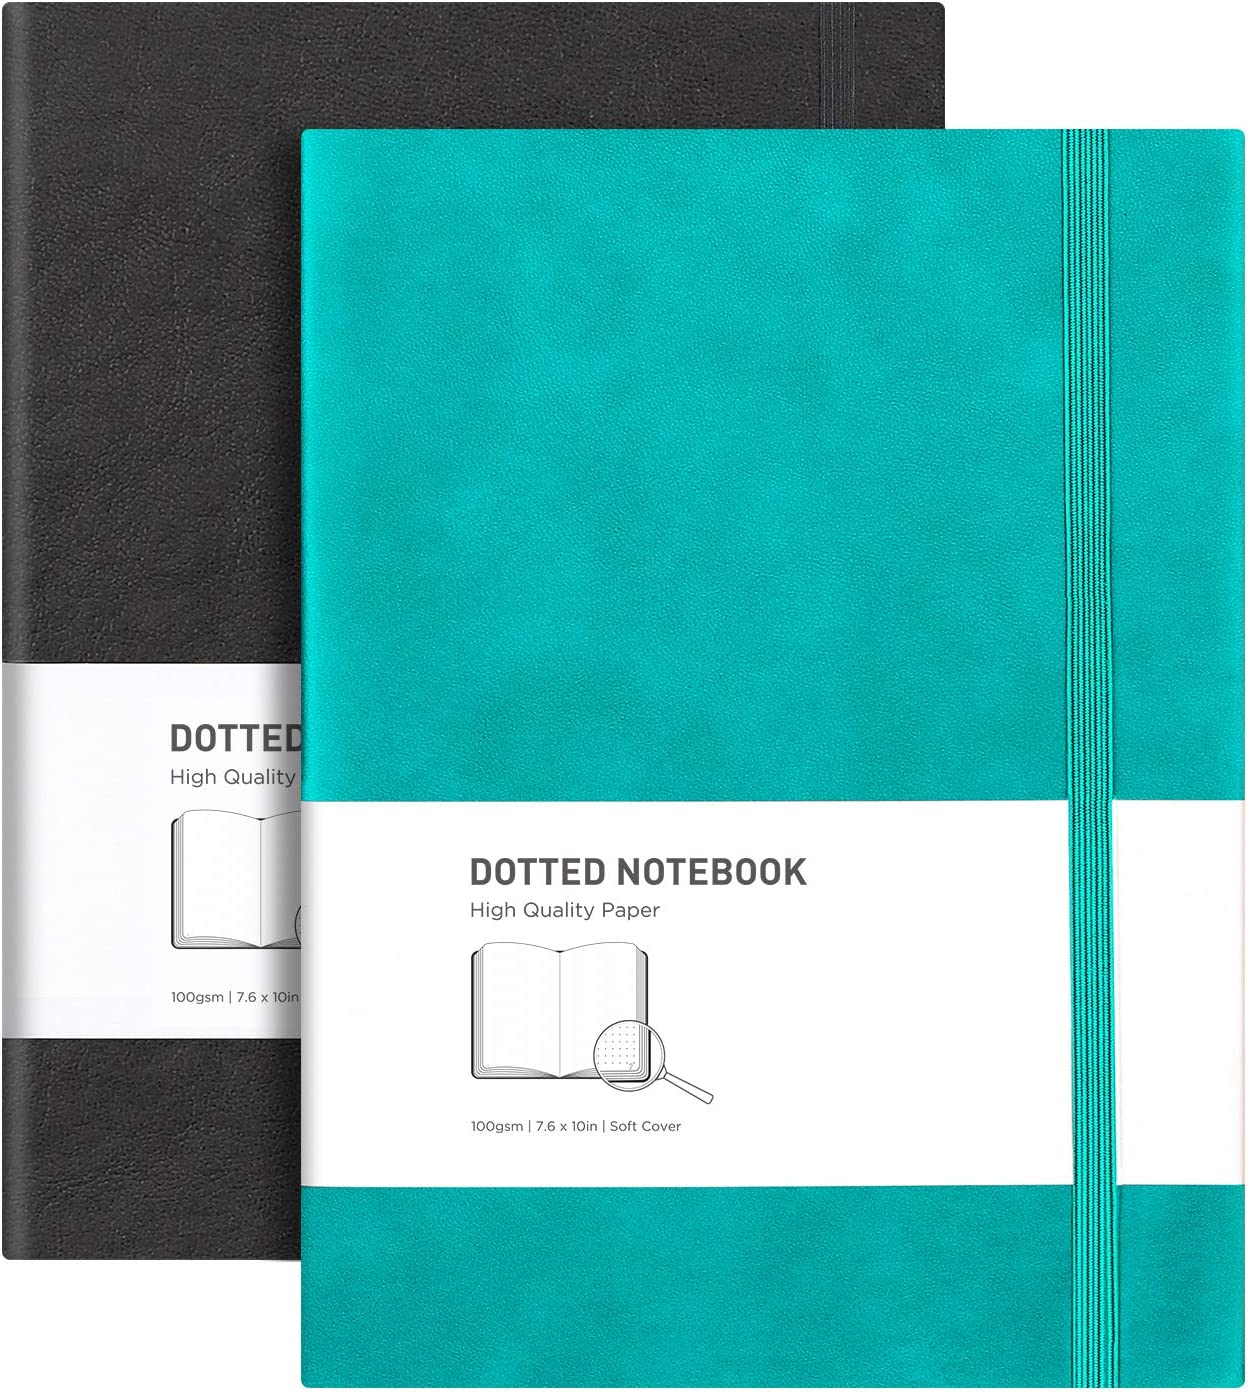 RETTACY Dotted Fees free!! Grid Arlington Mall Journal 2 Pack - Large Composition B5